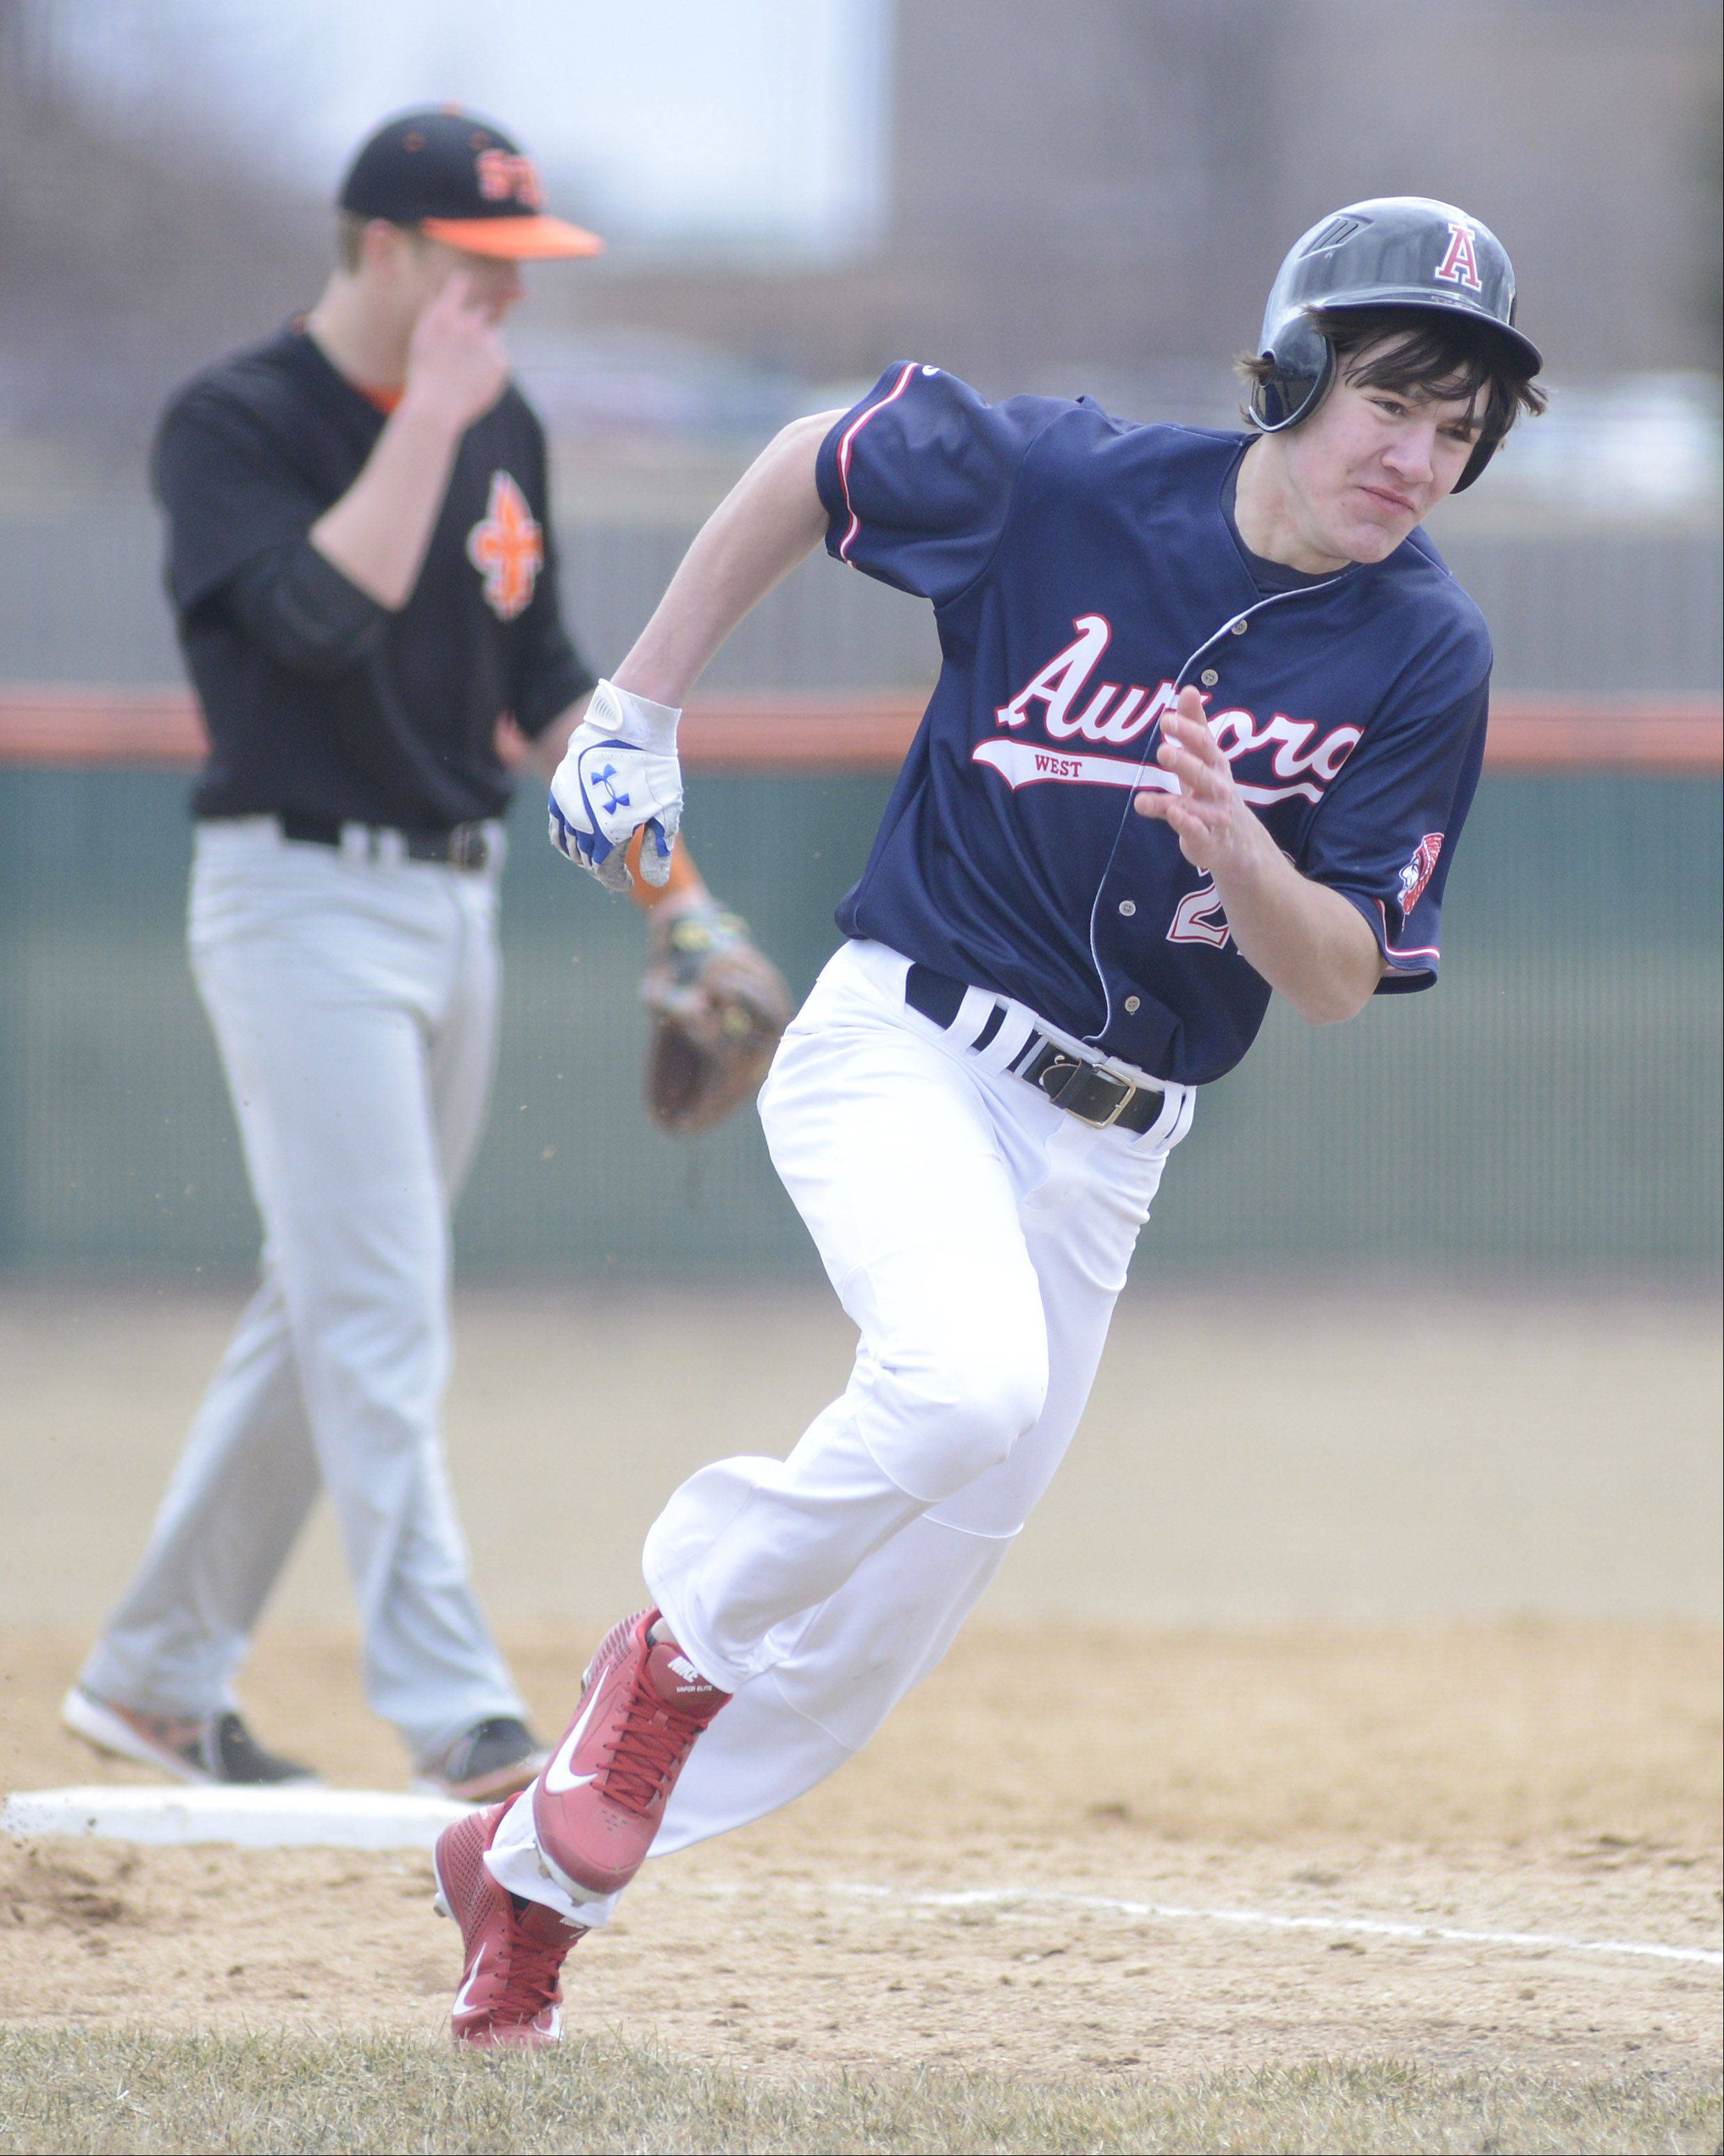 West Aurora's D.J., Varney rounds third base and makes his way home for the only run of the game Tuesday in St. Charles.